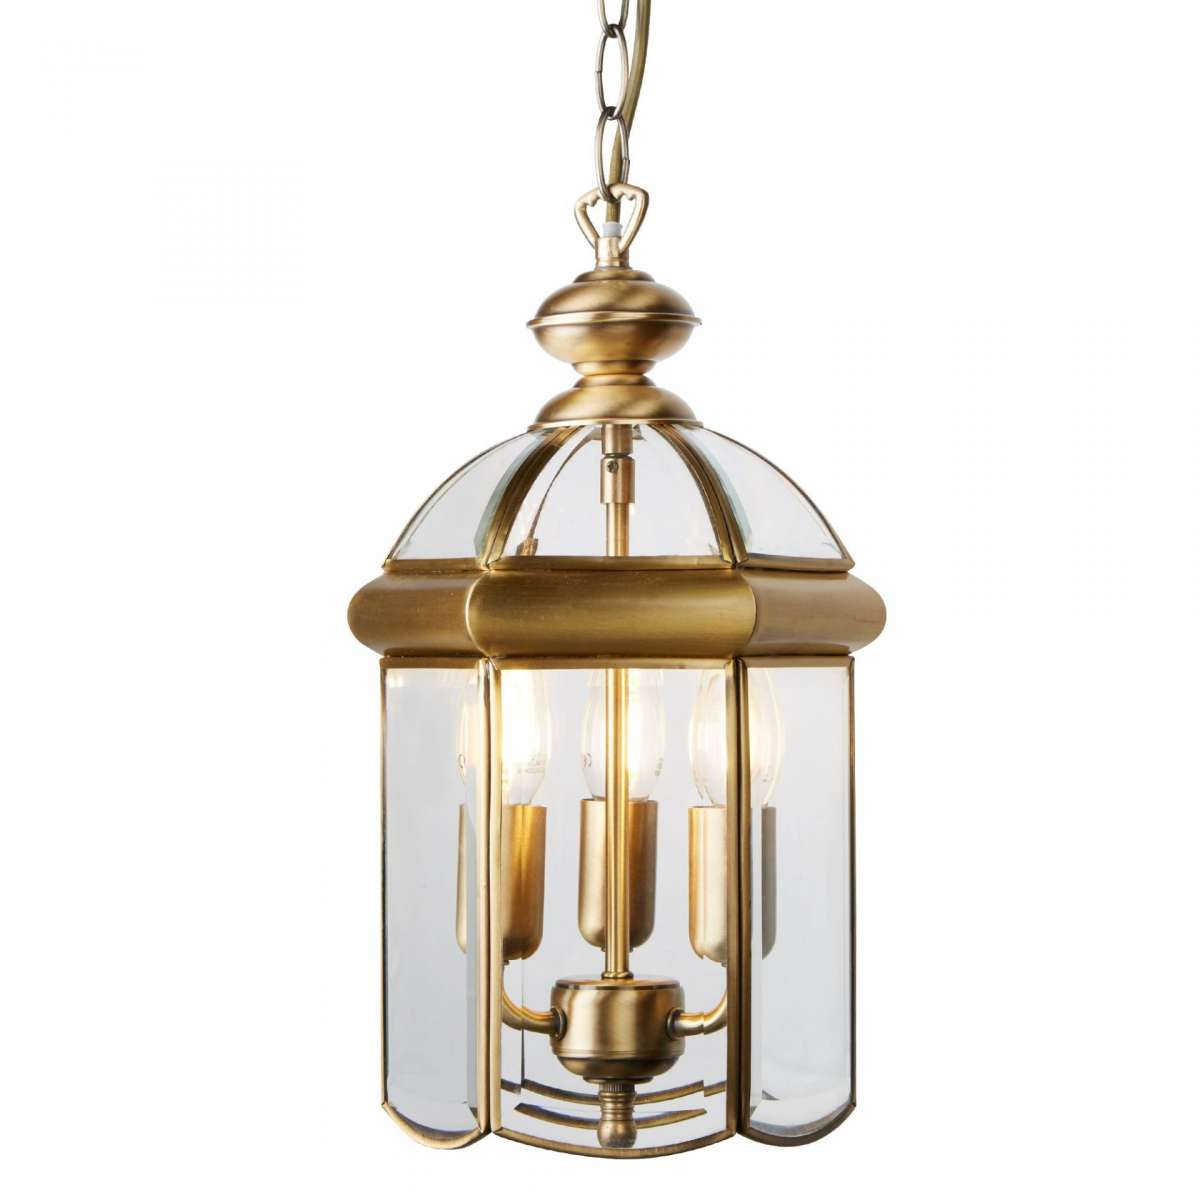 Searchlight 7133AB 3 Light Lantern Antique Brass With Domed Glass